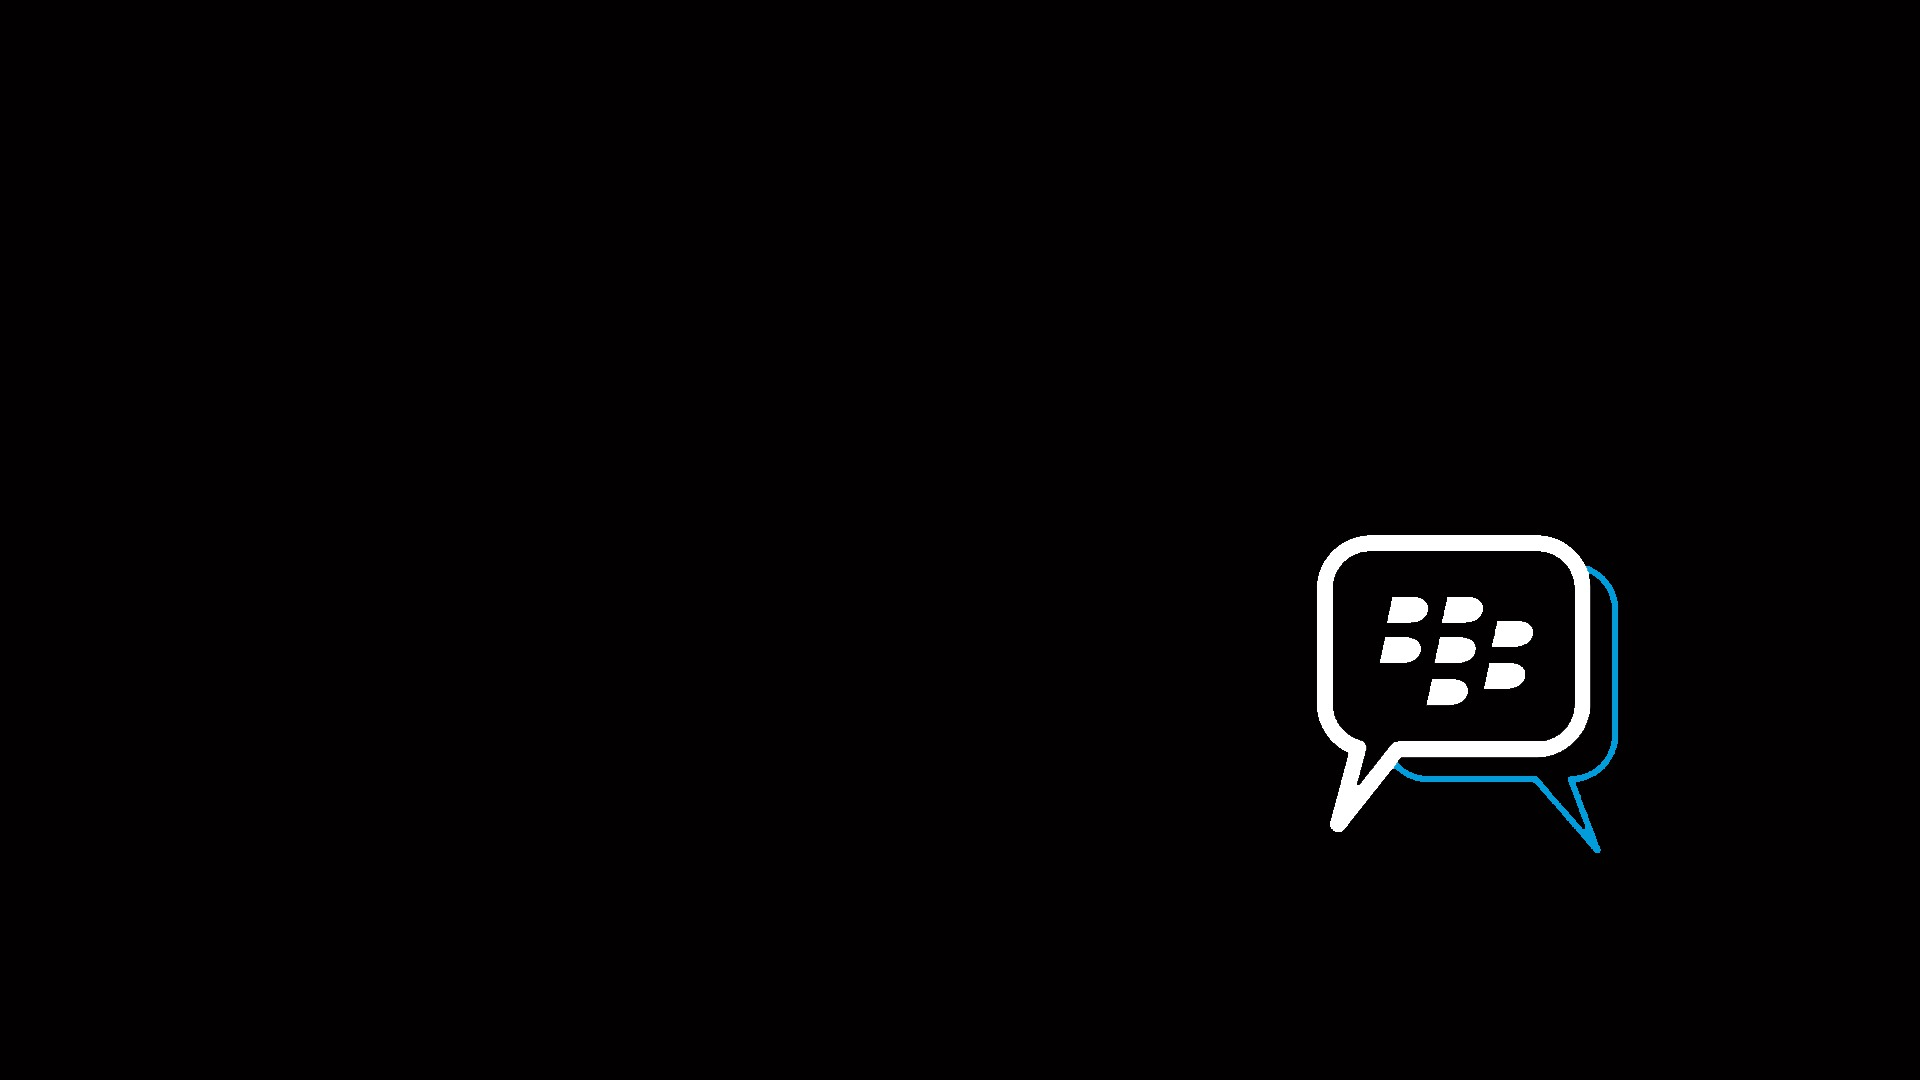 Blackberry logo wallpaper 07 1920x1080 voltagebd Images